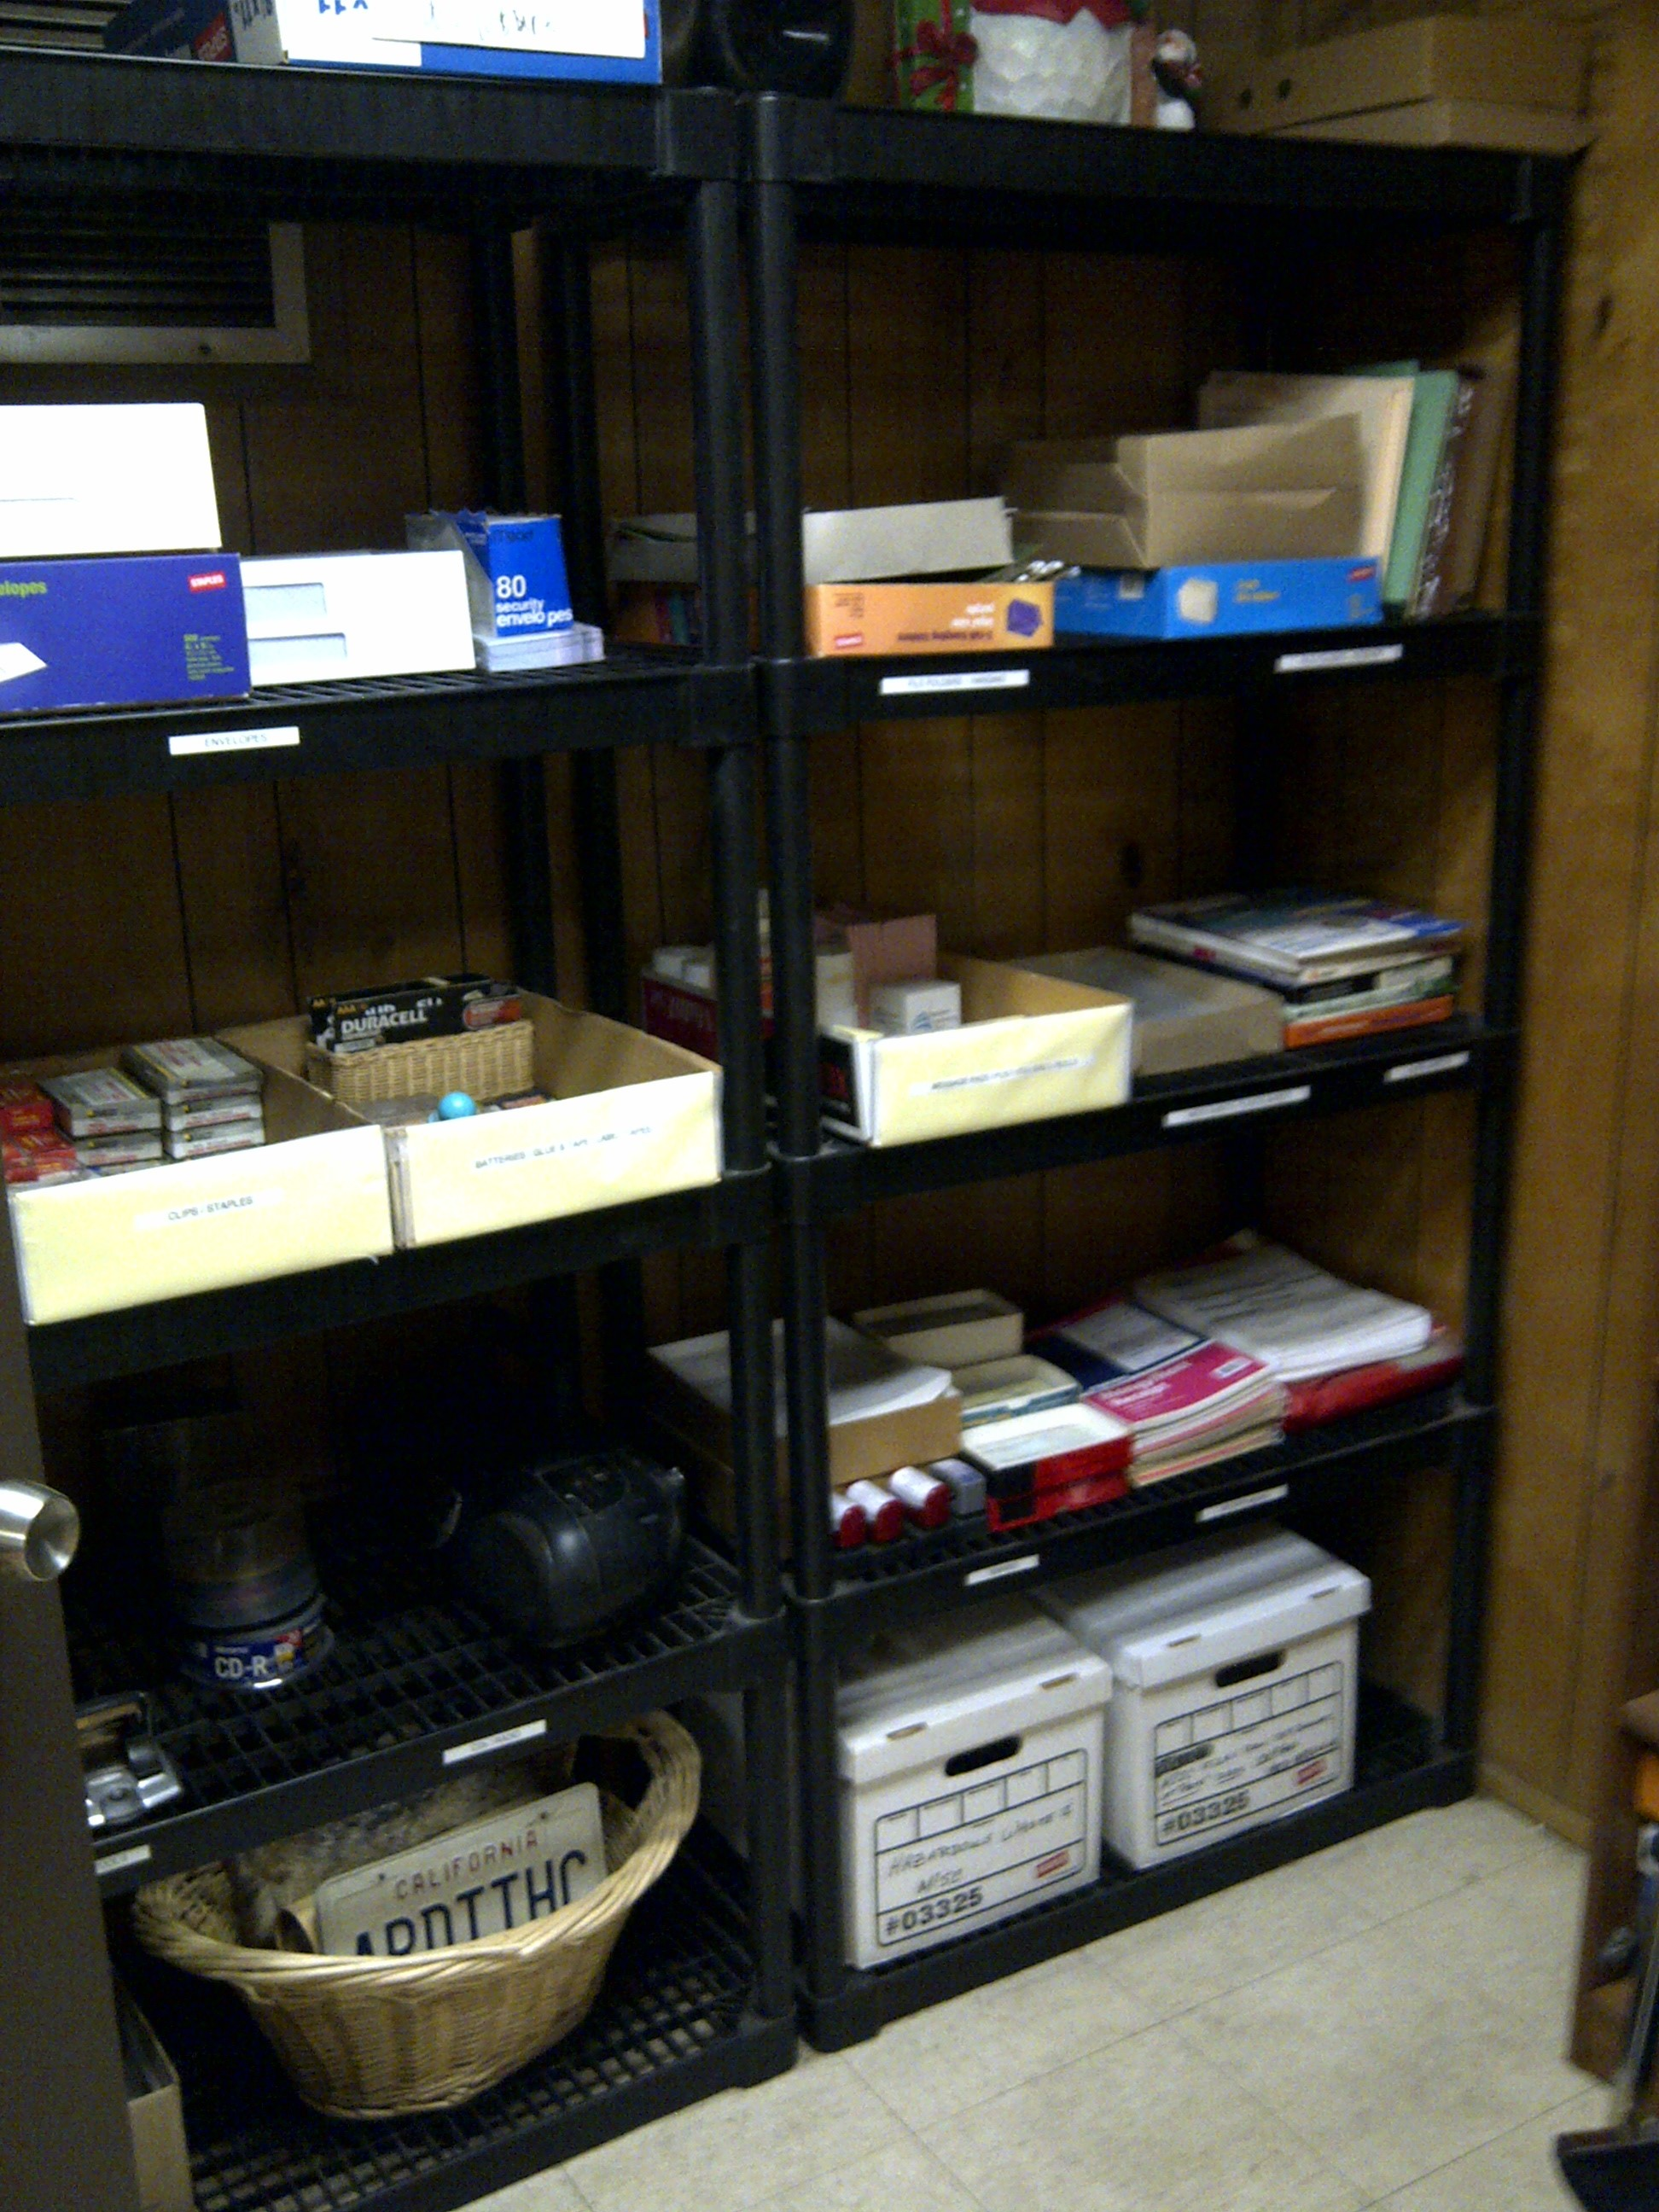 AFTER Center Shelves